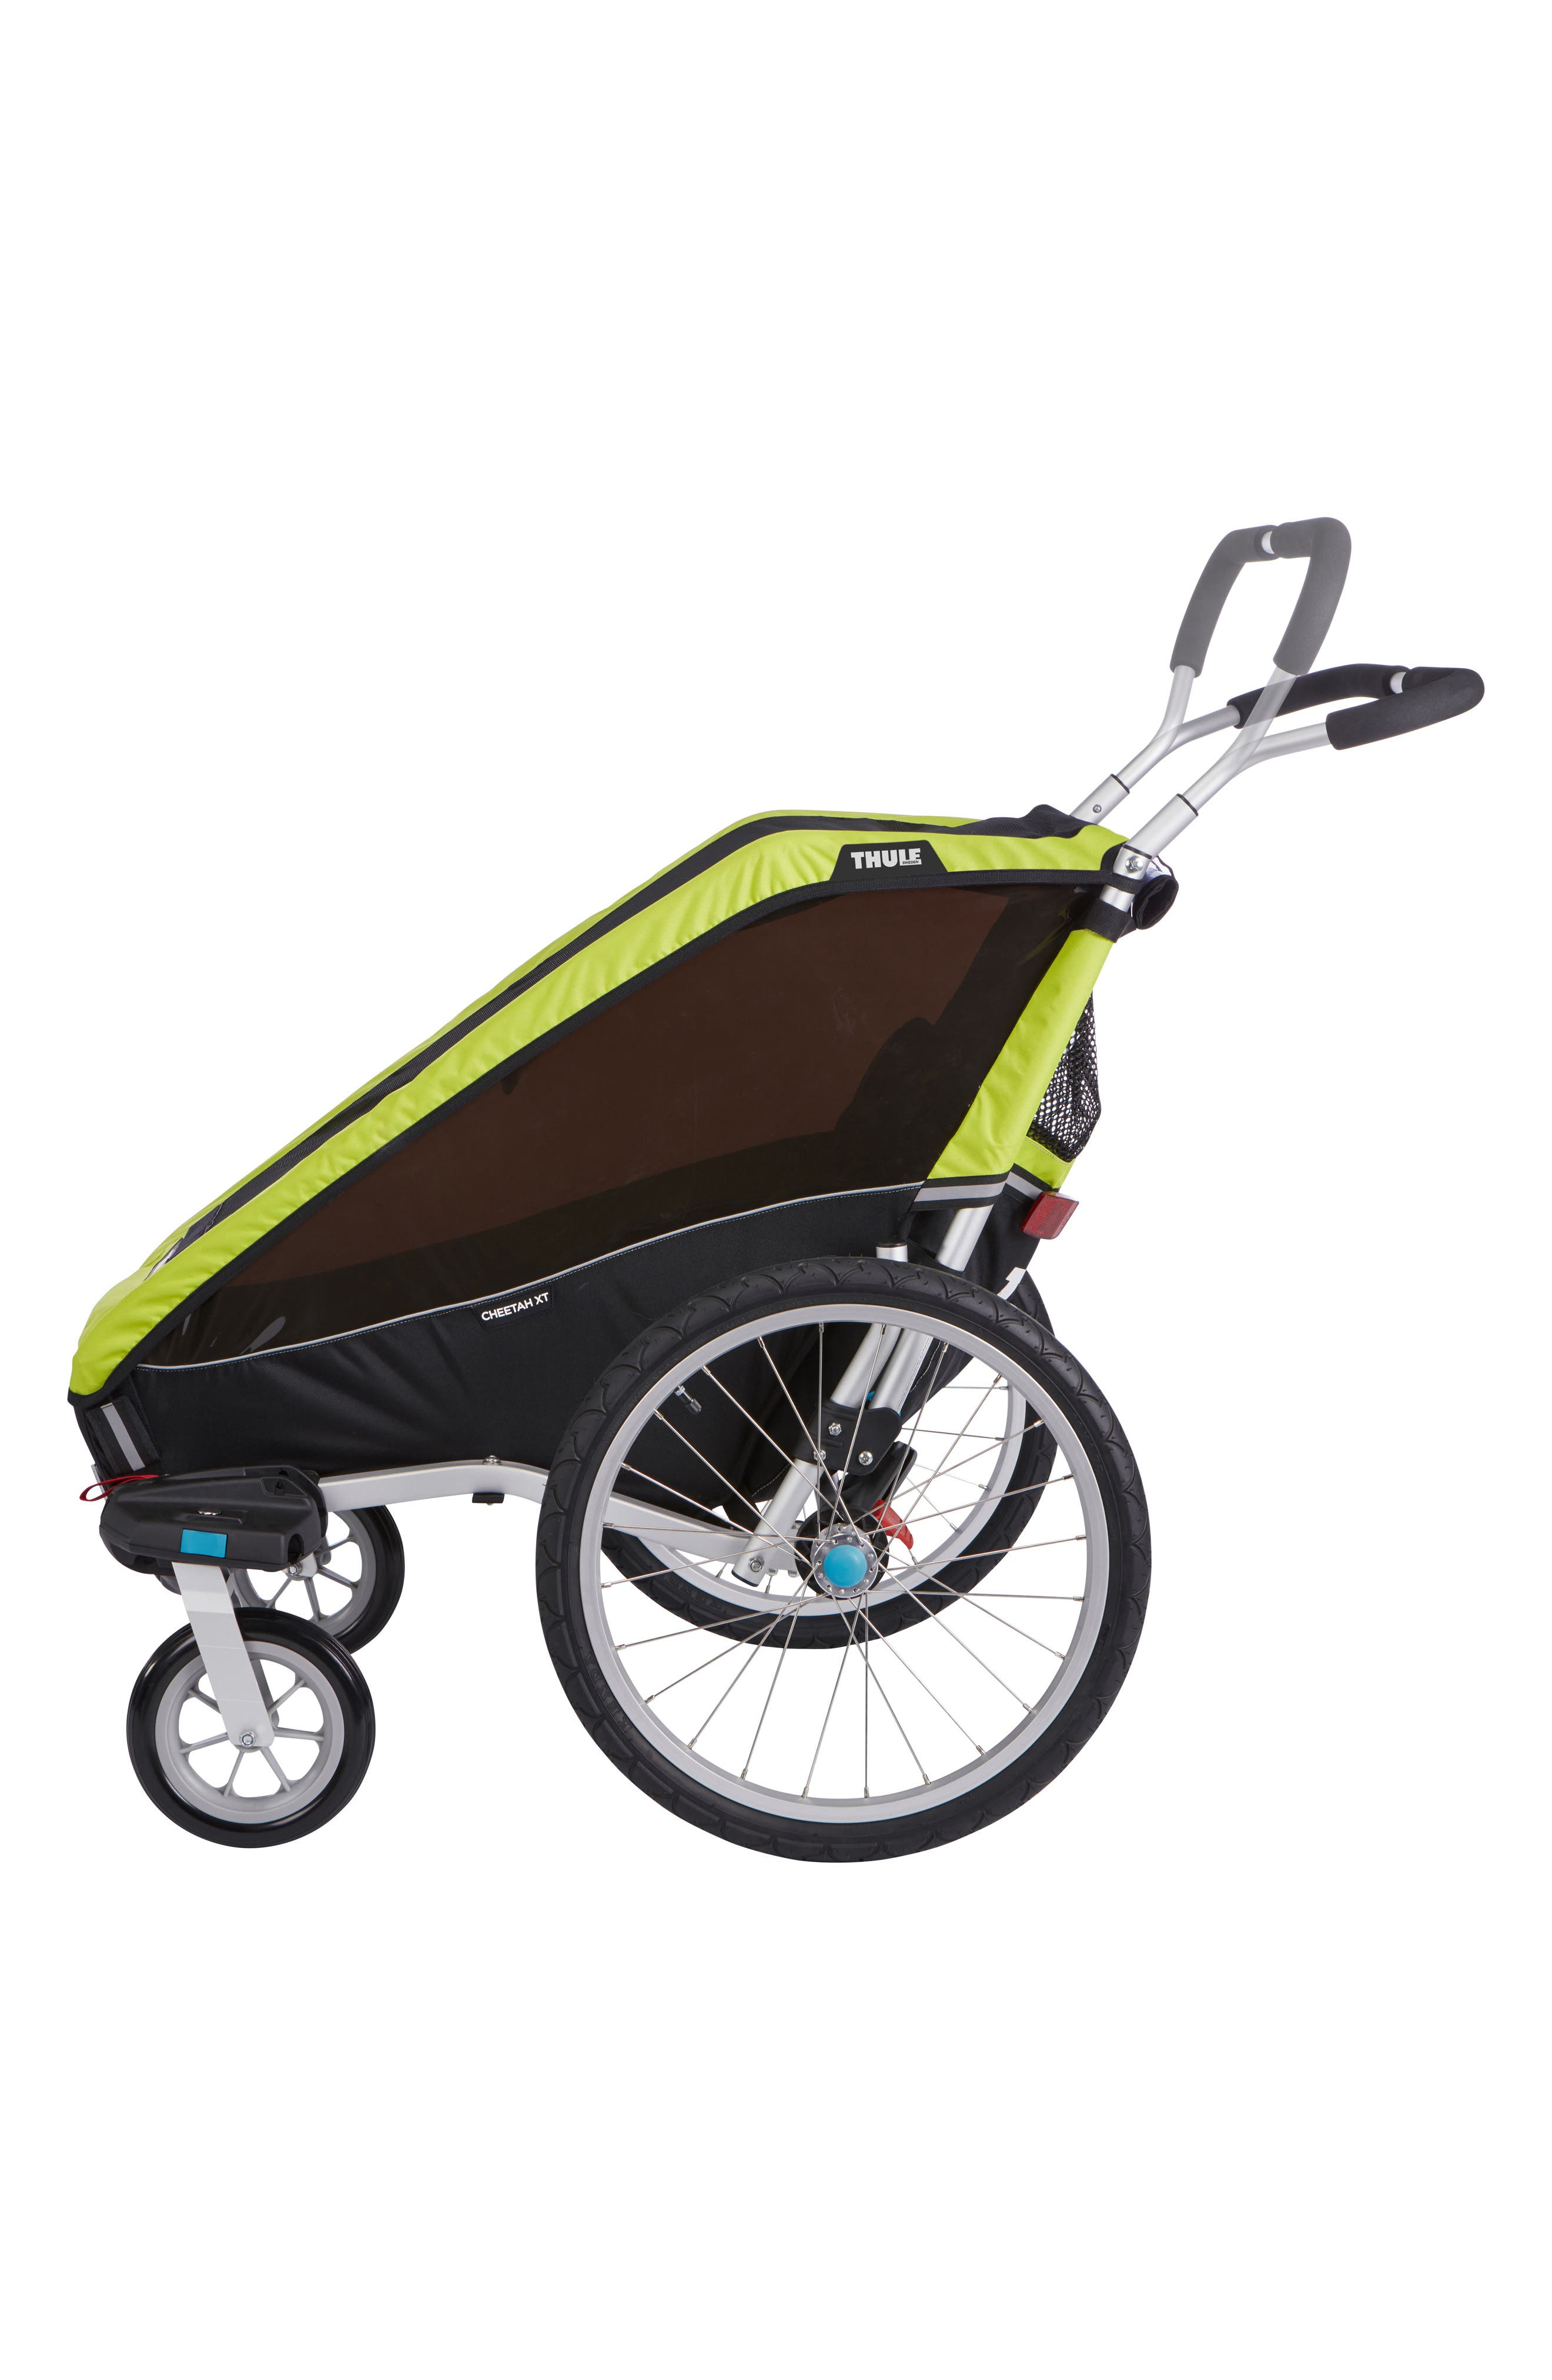 Chariot Cheetah XT 2 Multisport Cycle Trailer/Stroller,                             Alternate thumbnail 7, color,                             CHARTREUSE